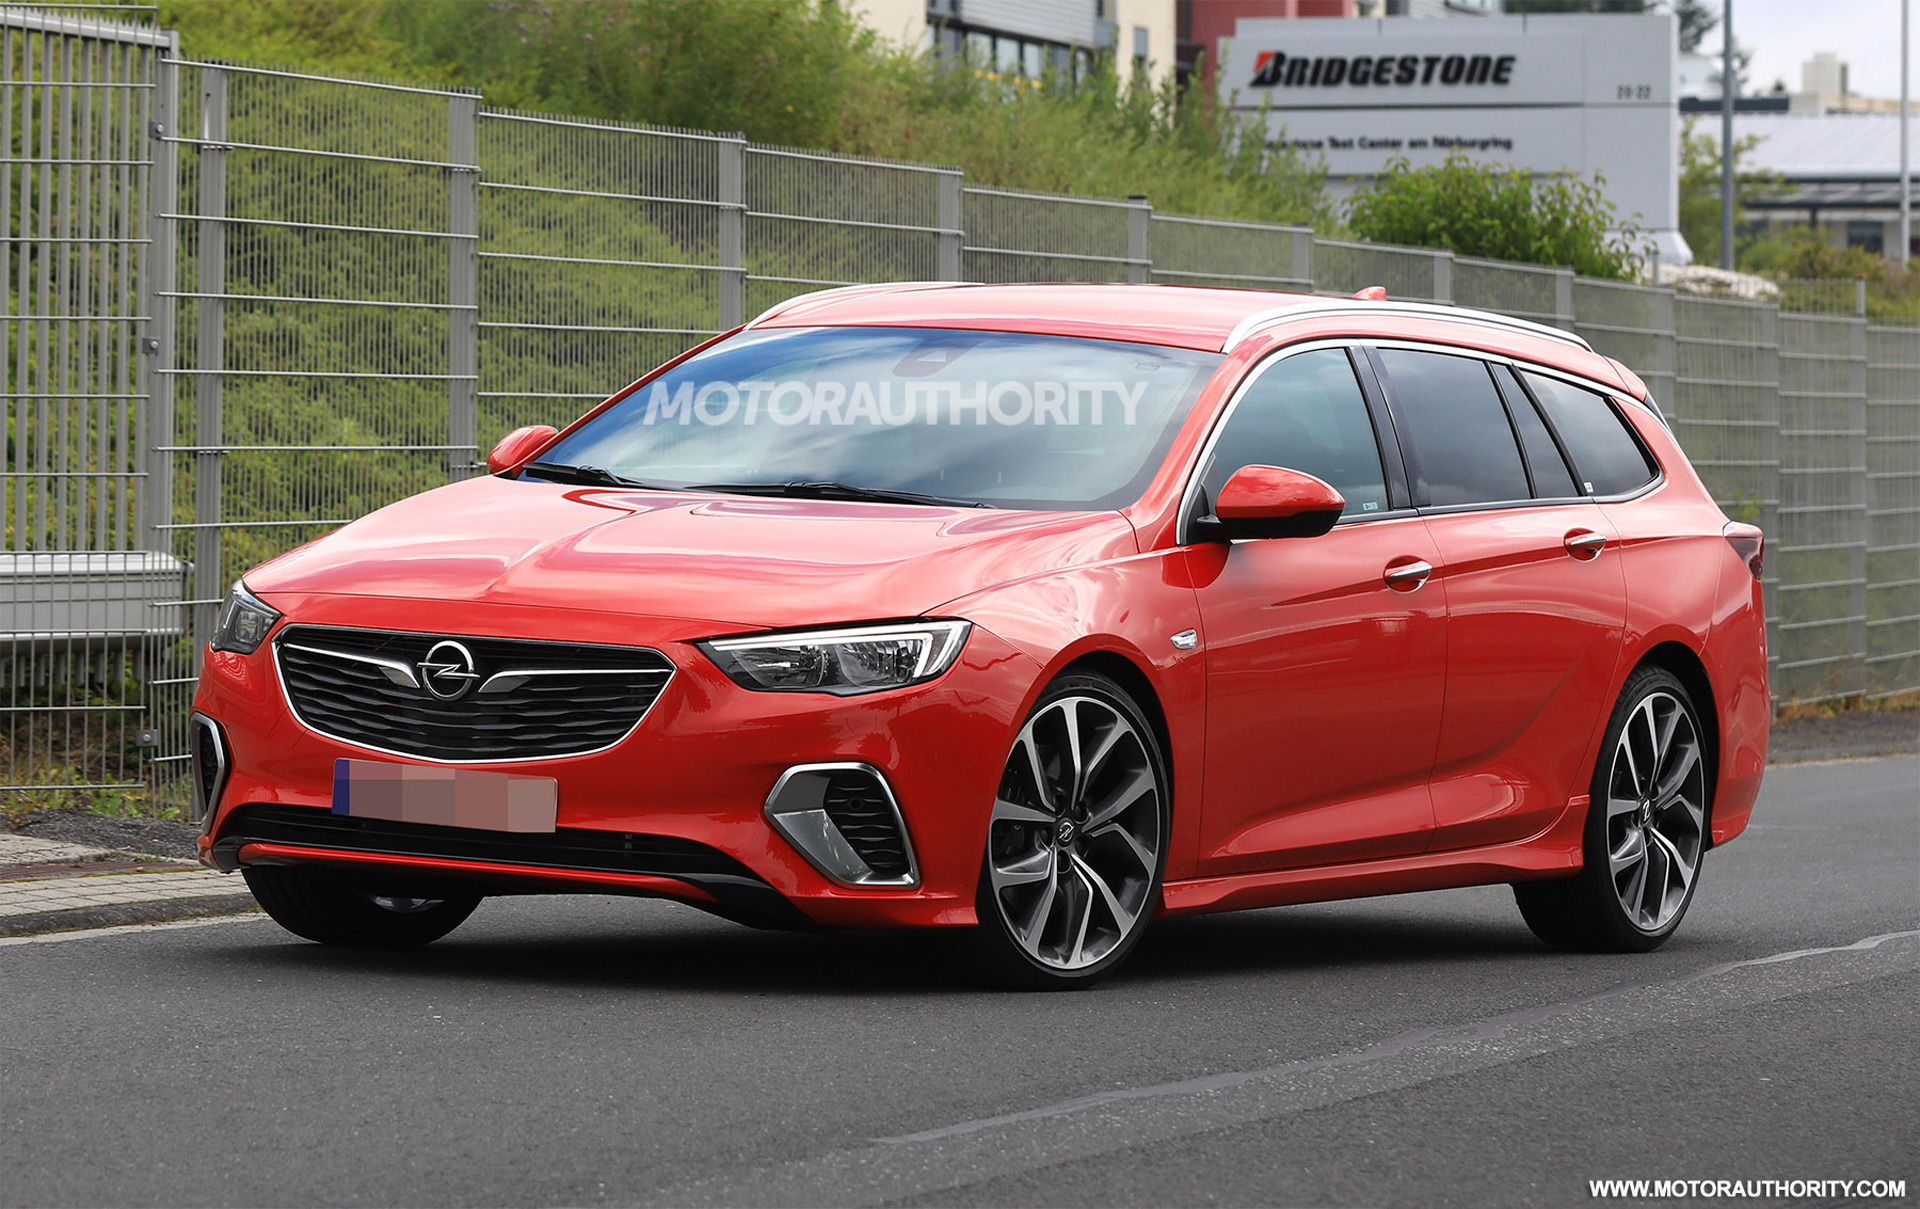 2018 opel insignia gsi sports tourer spy shots. Black Bedroom Furniture Sets. Home Design Ideas